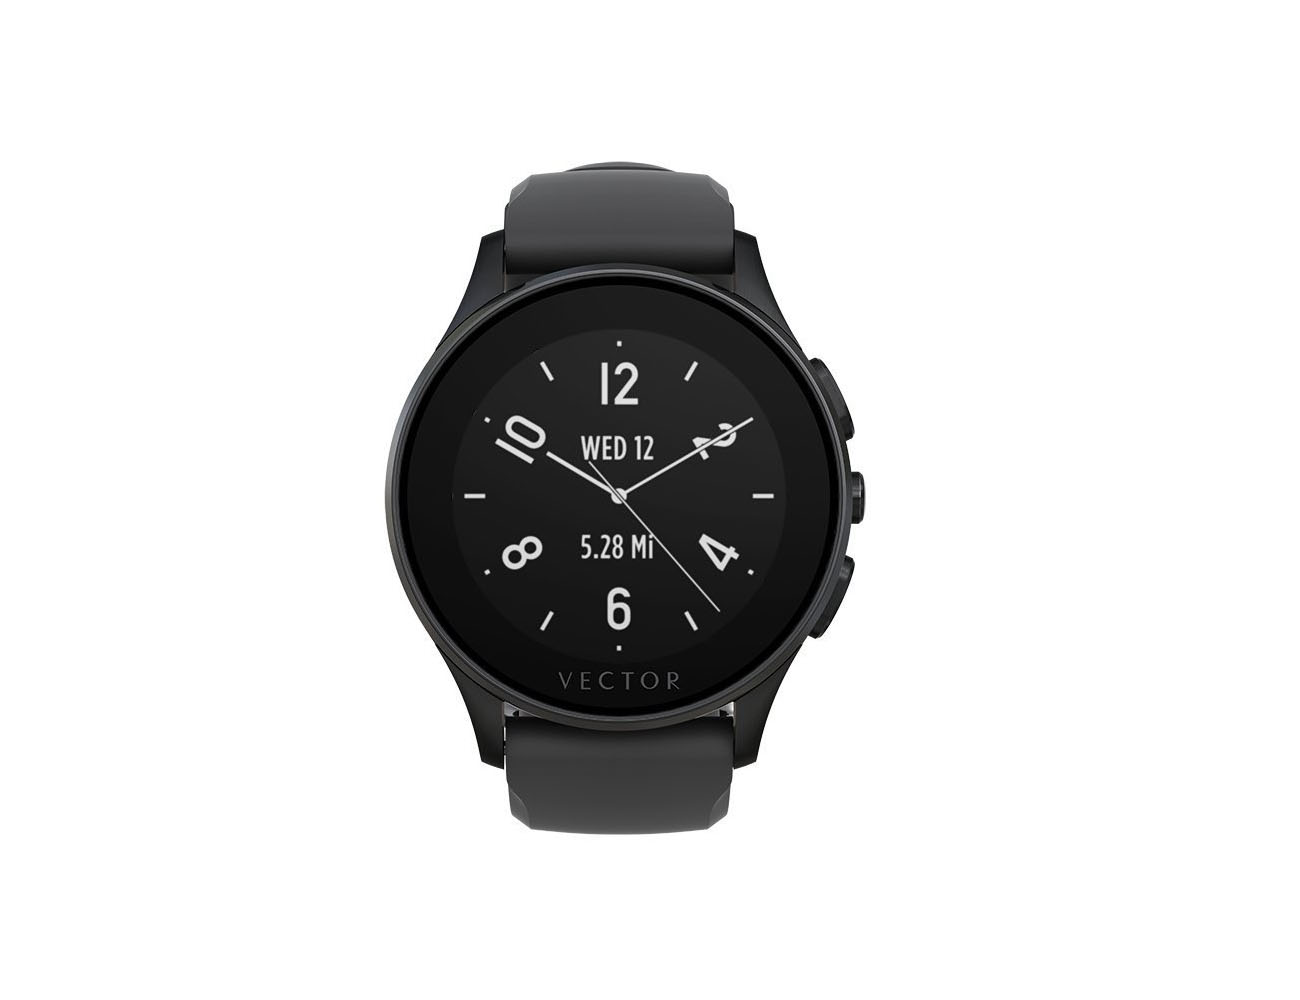 vector-luna-smartwatch-05